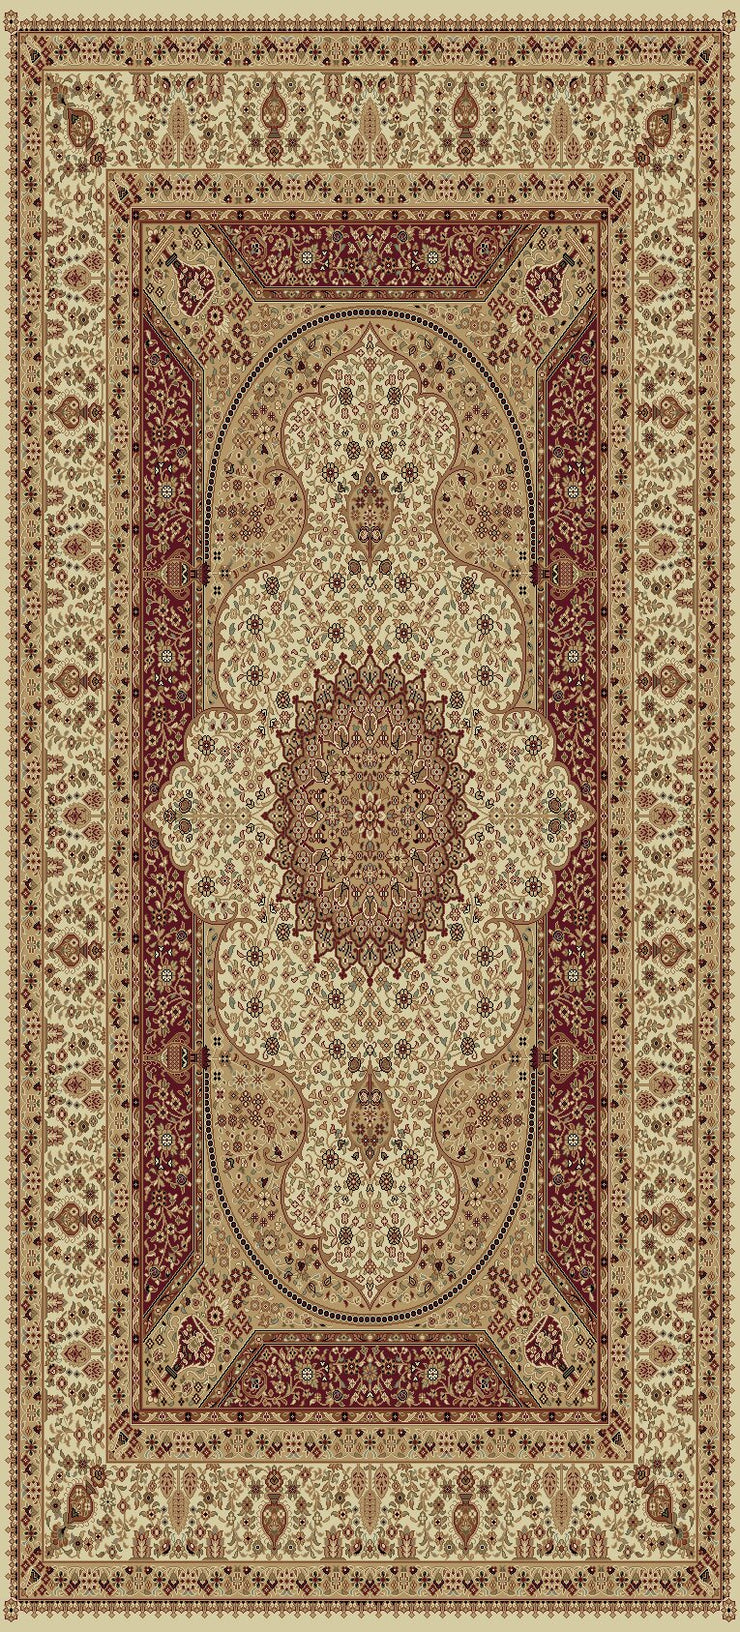 Persian Design 1.5 Million Point Heatset Tabriz 3916 Area Rug by Rug Factory Plus - Rug Factory Plus